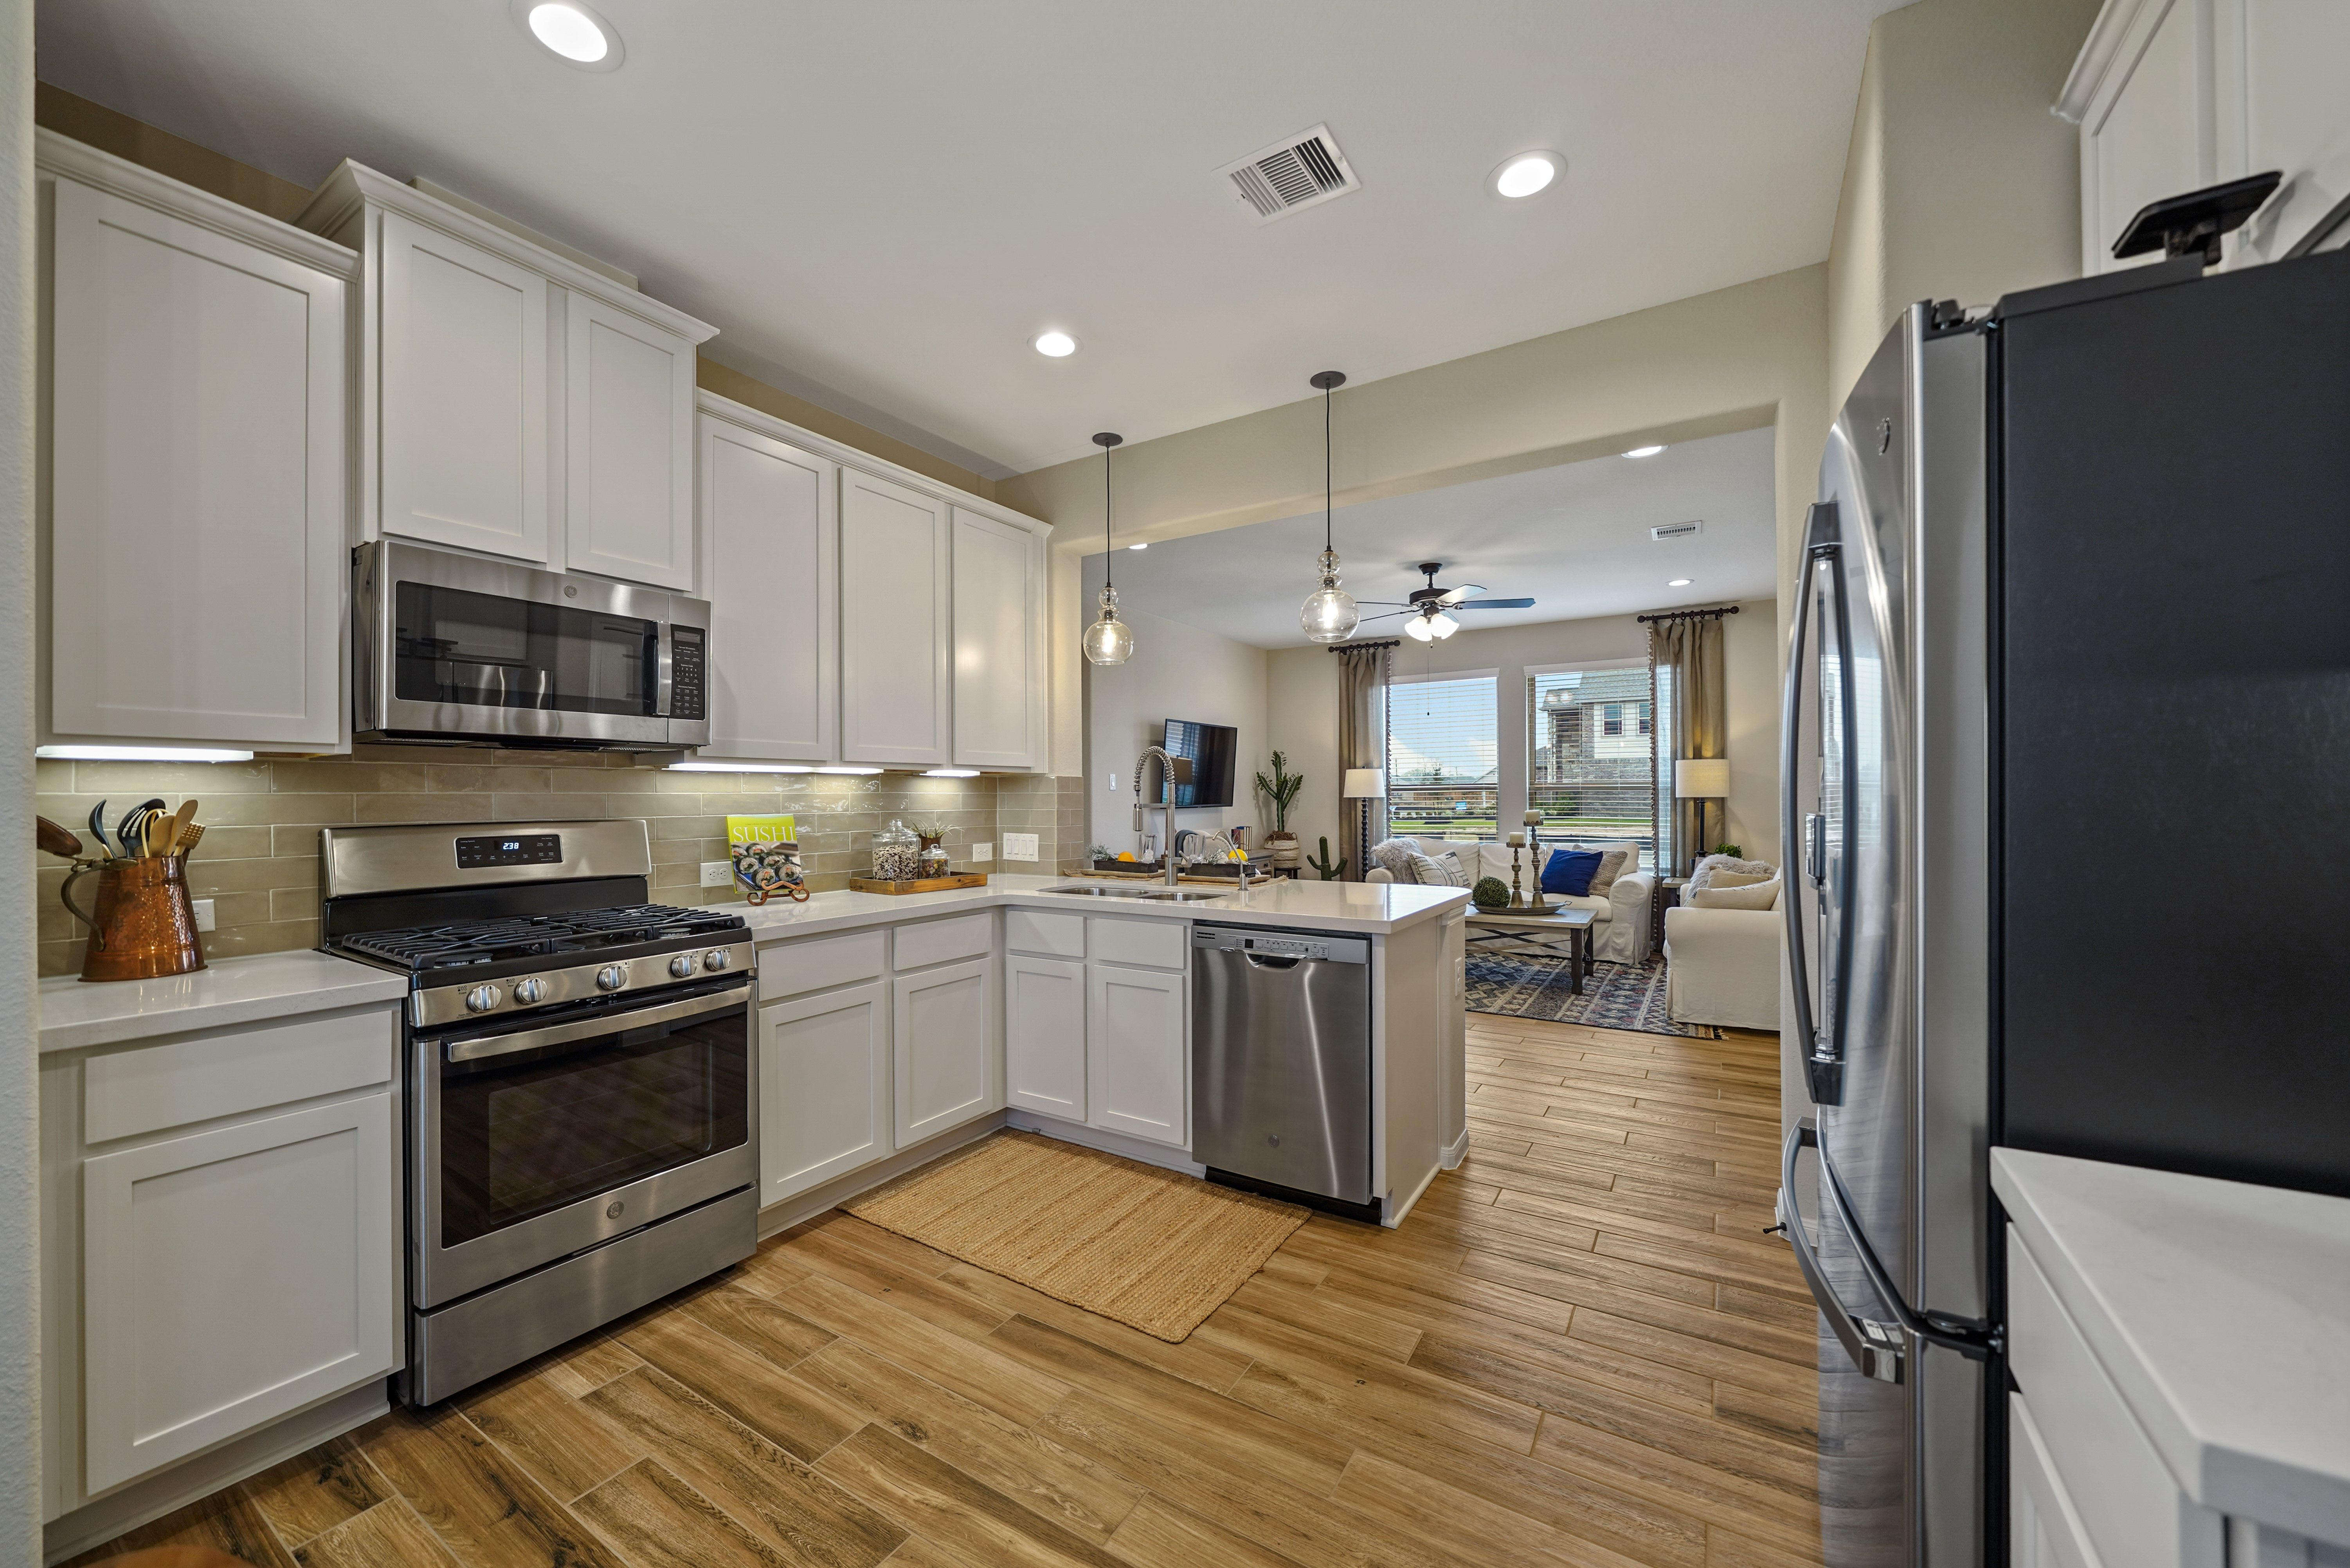 Kitchen featured in the Hoover II By K. Hovnanian® Homes in Brazoria, TX